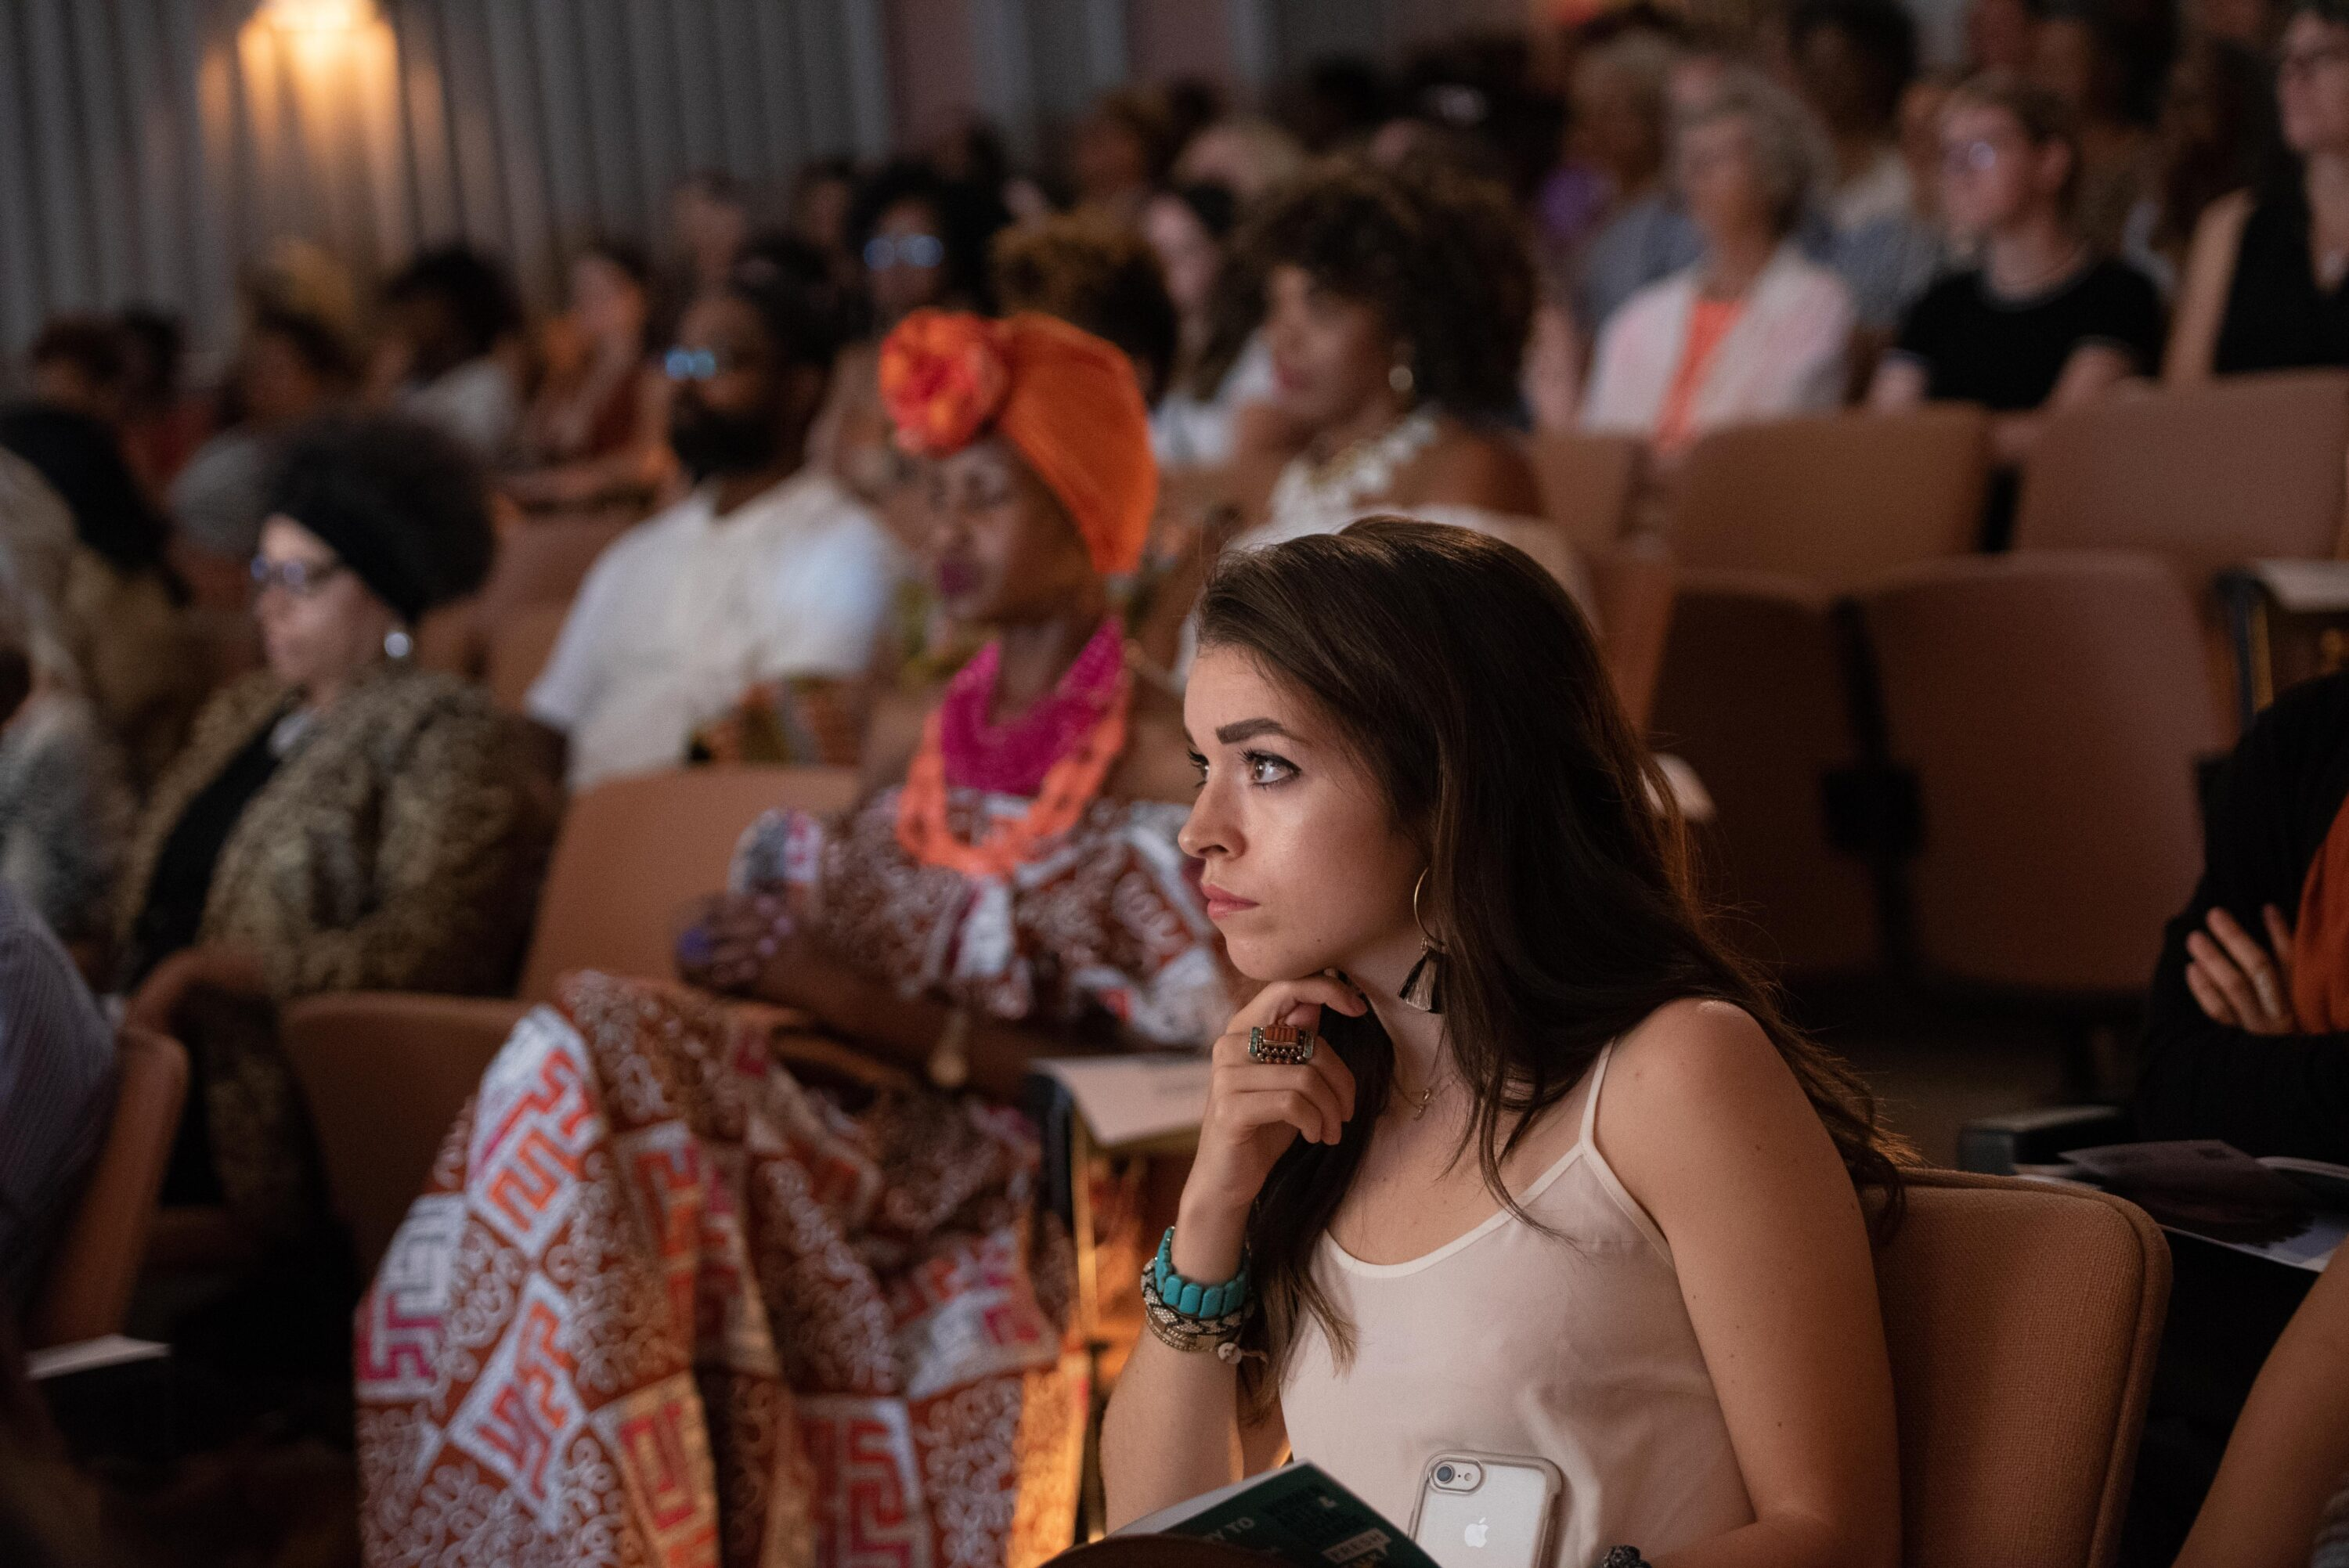 An audience seated in a dim theater looking intently forward. Focused in the foreground is a light-skinned person with their chin on their hand, long brown hair, and a tank top.